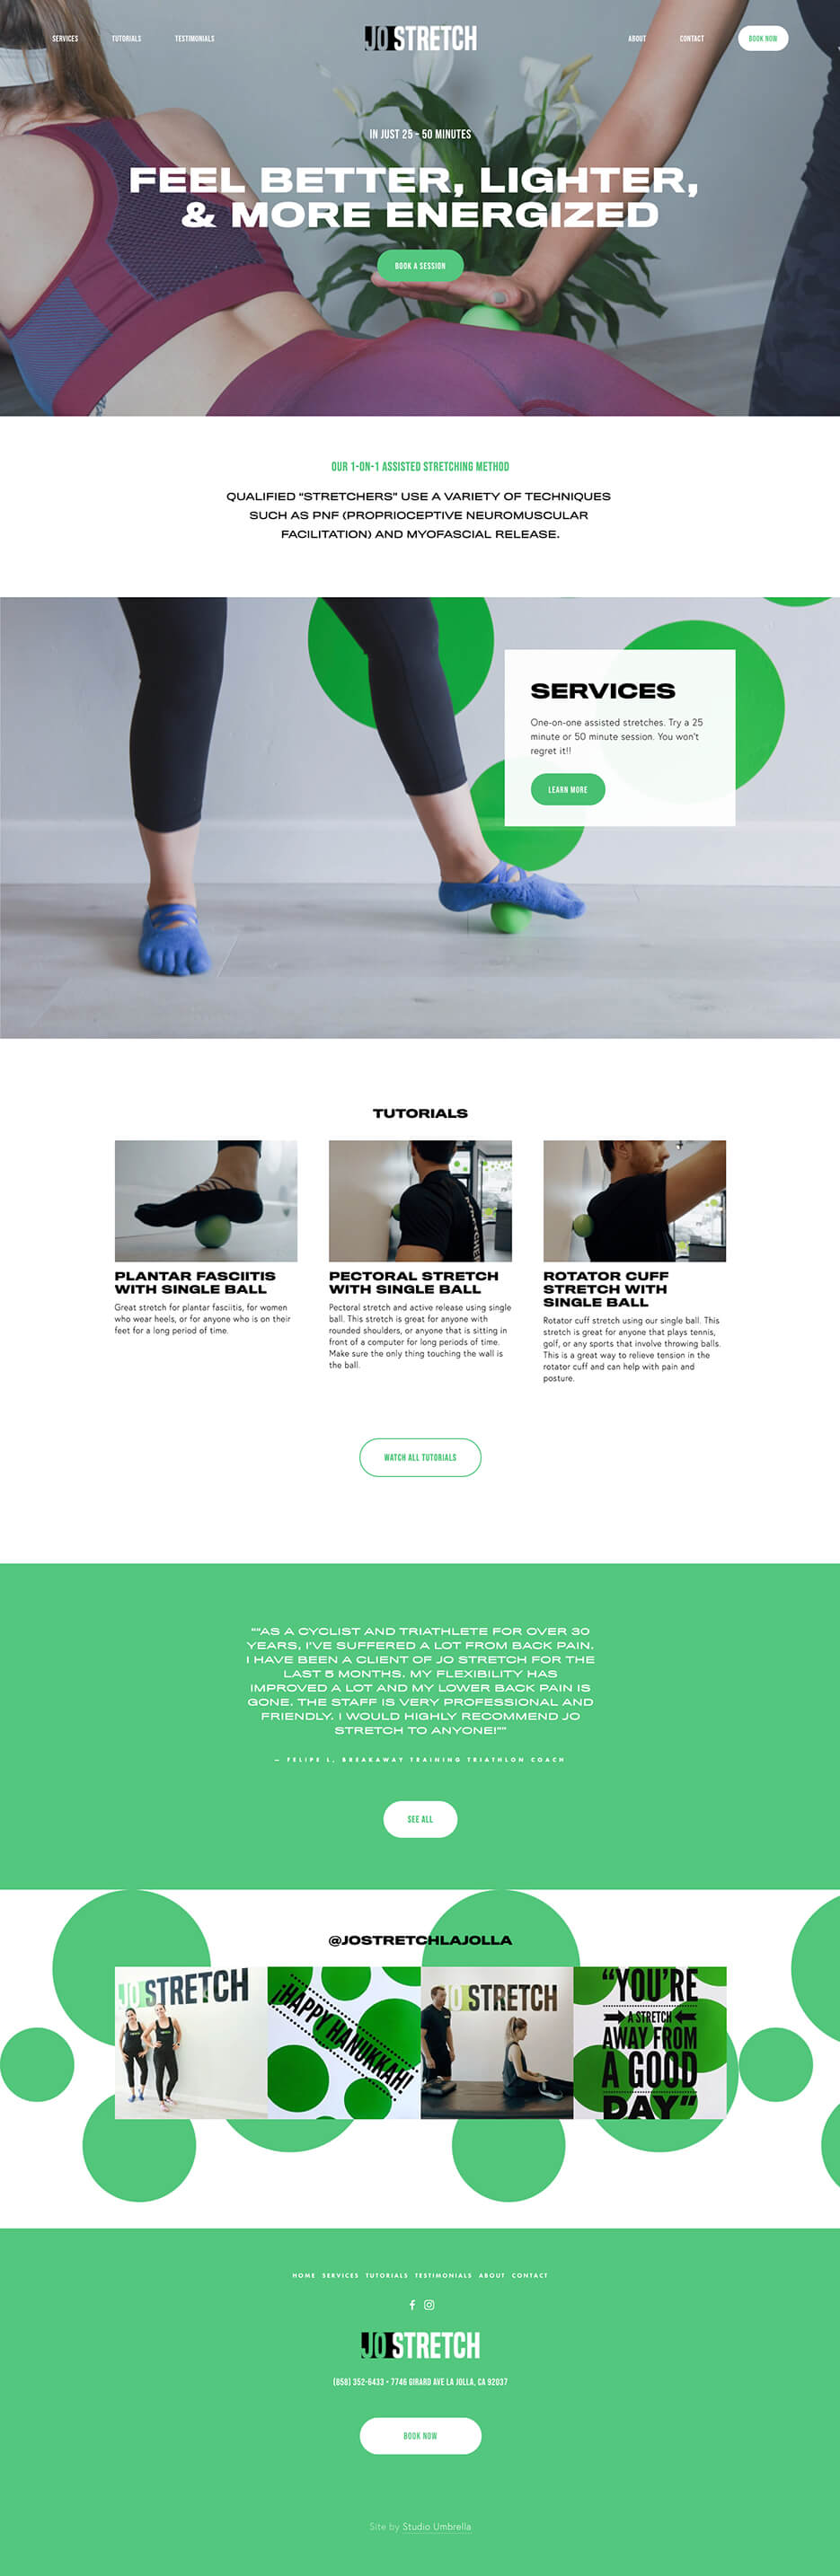 Thumbnail for Web design for a fitness studio